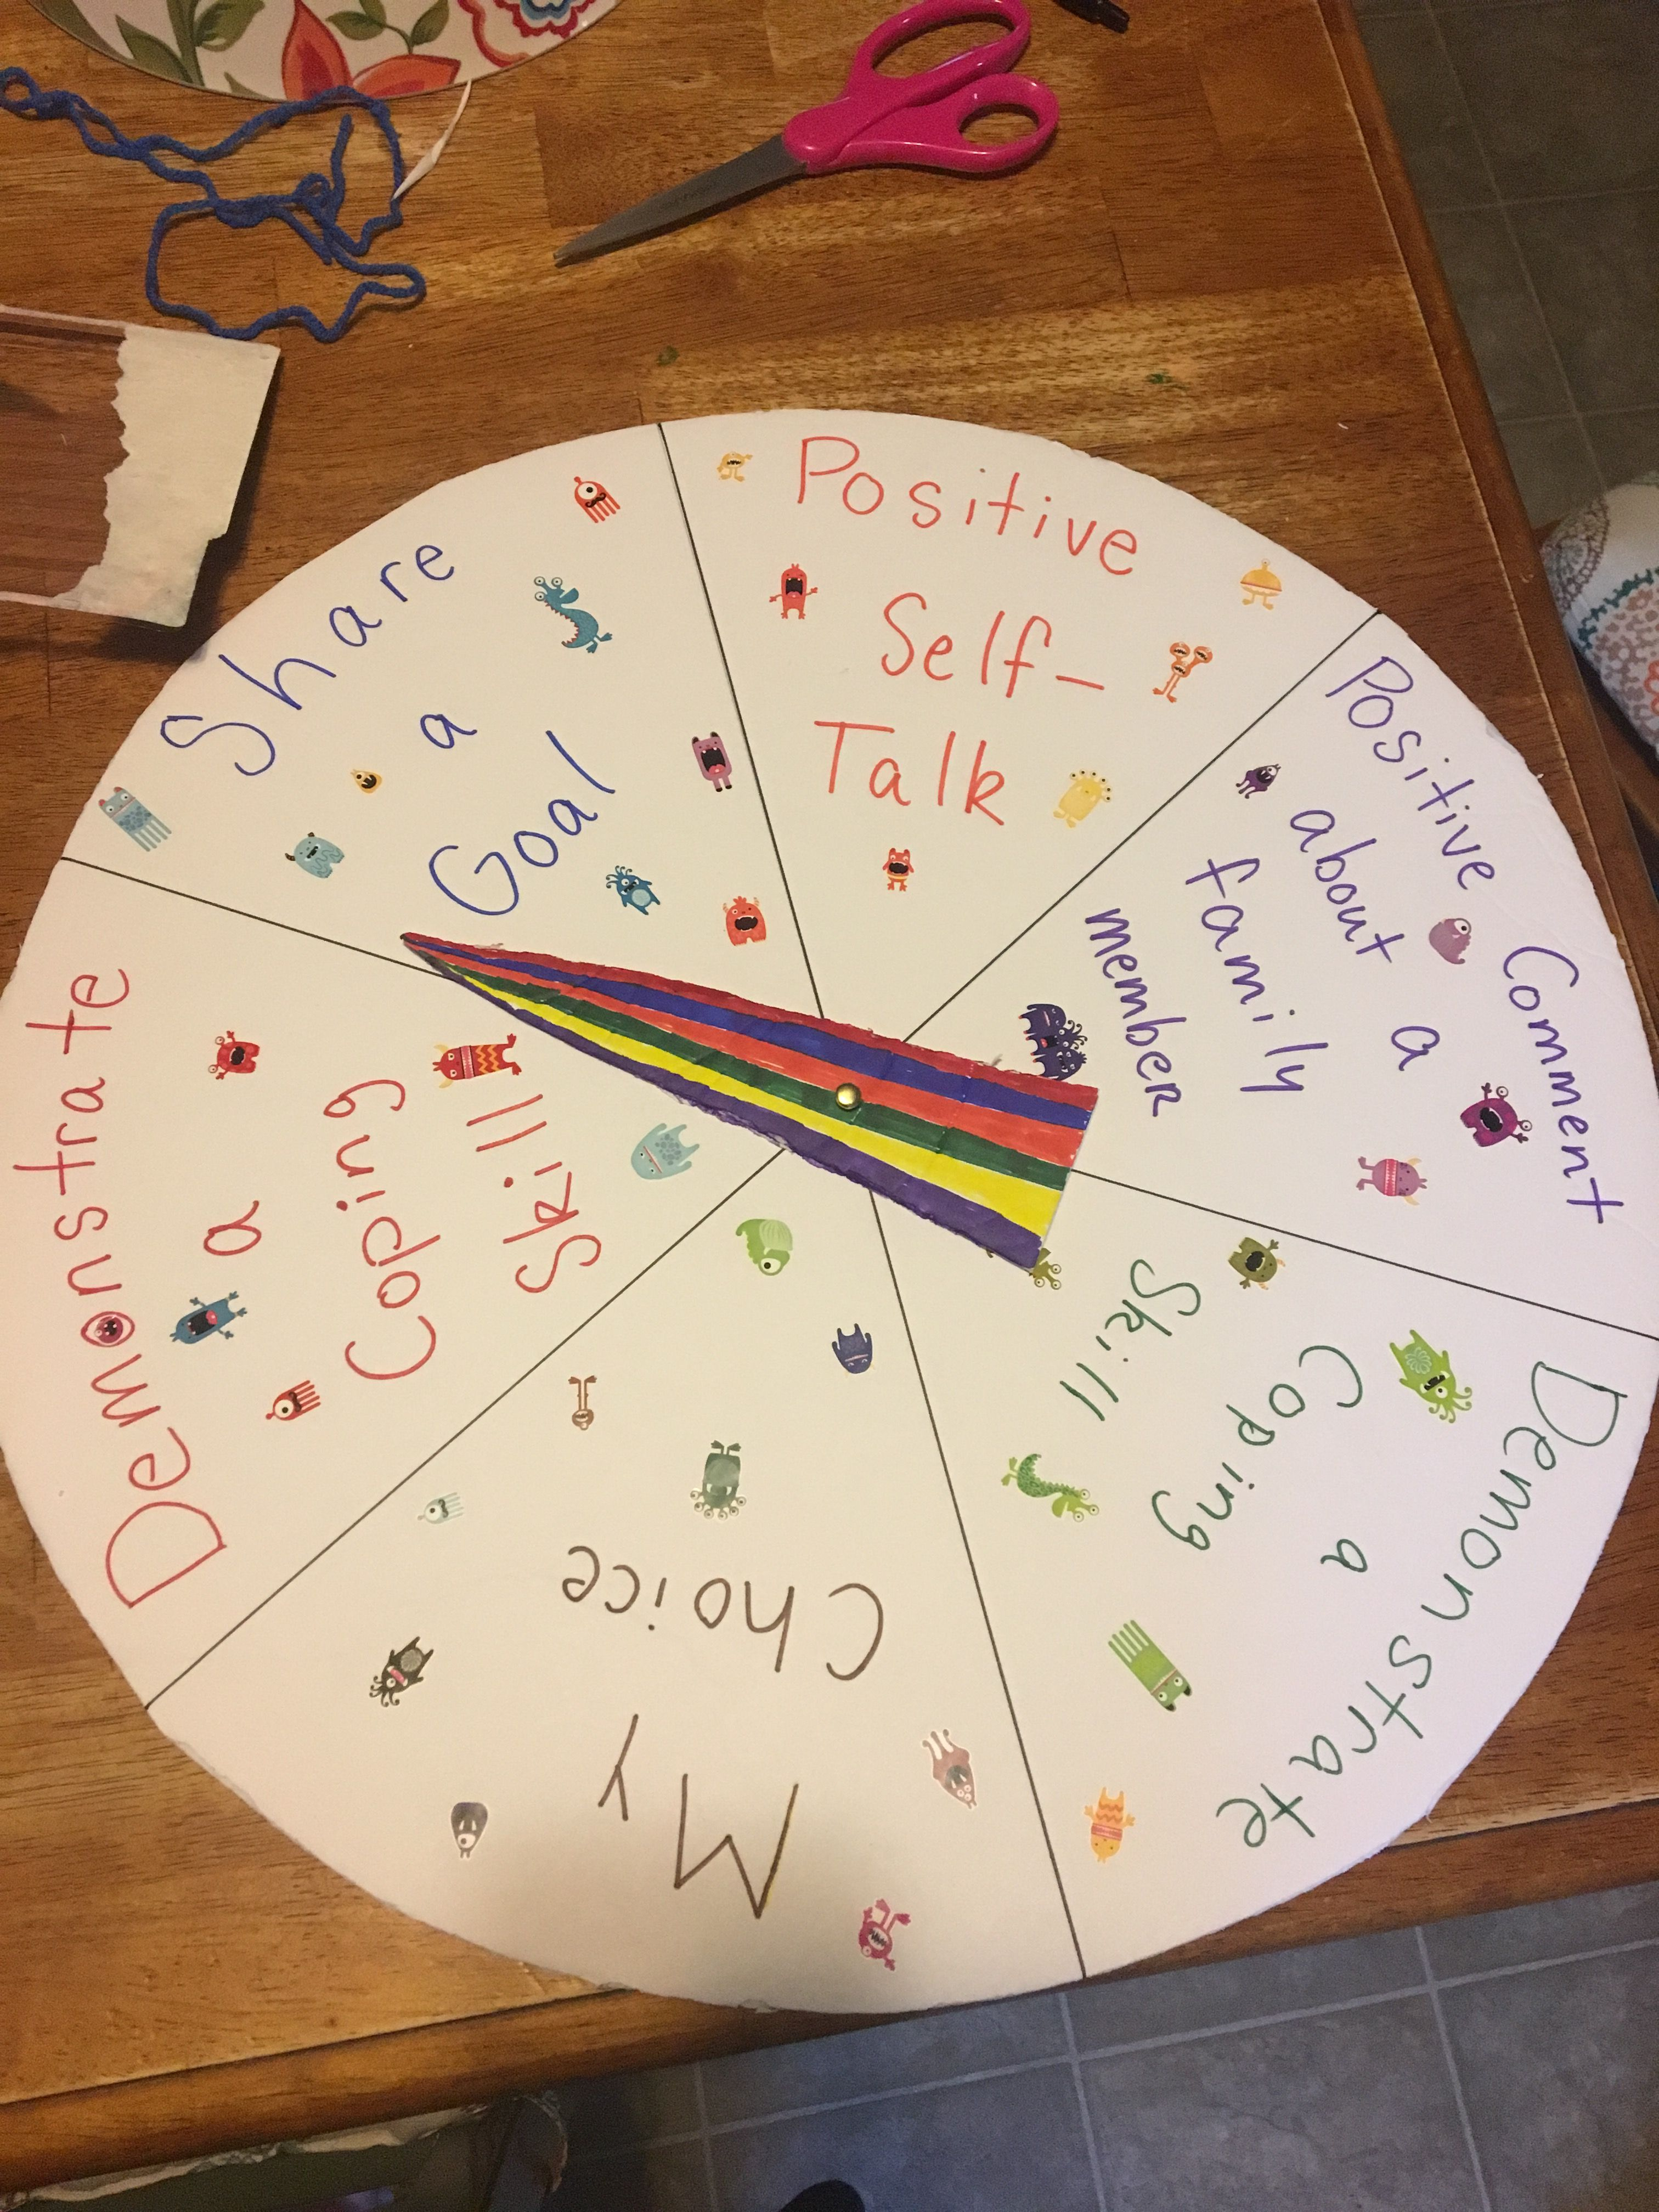 Coping Skills Training Wheel For Case Management Kiddos